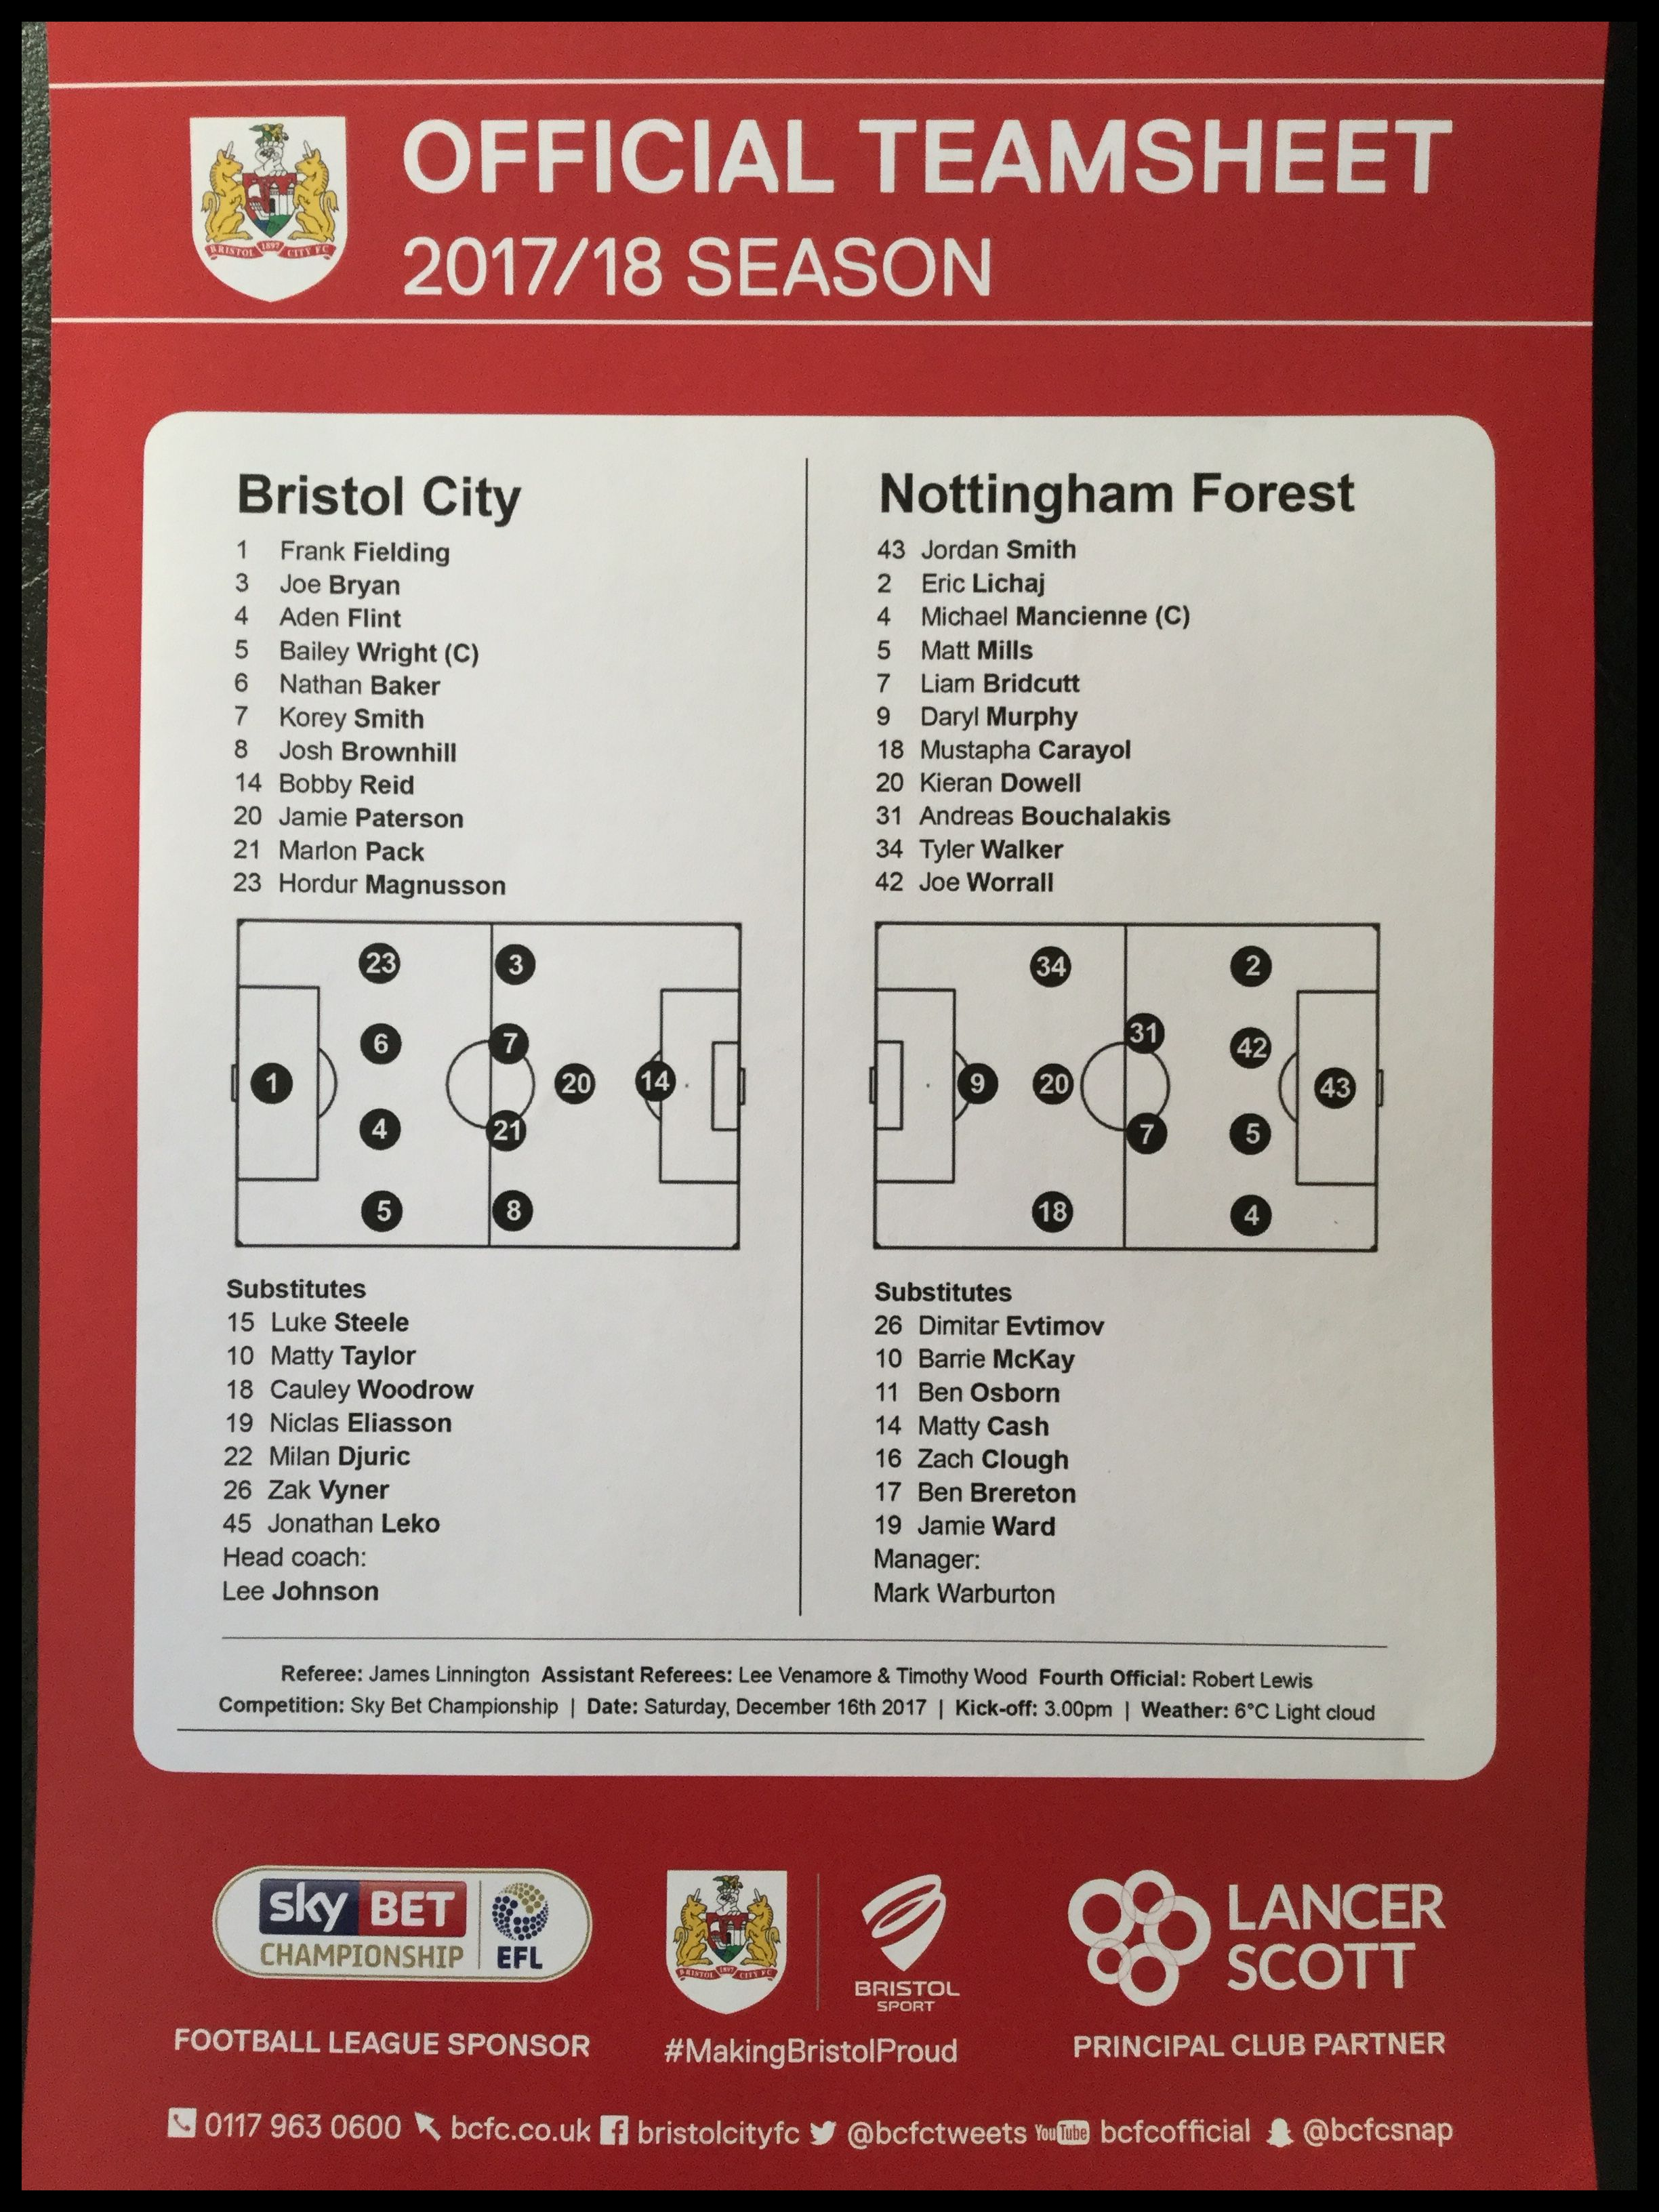 Bristol City v Nottingham Forest 16-12-17 Team Sheet